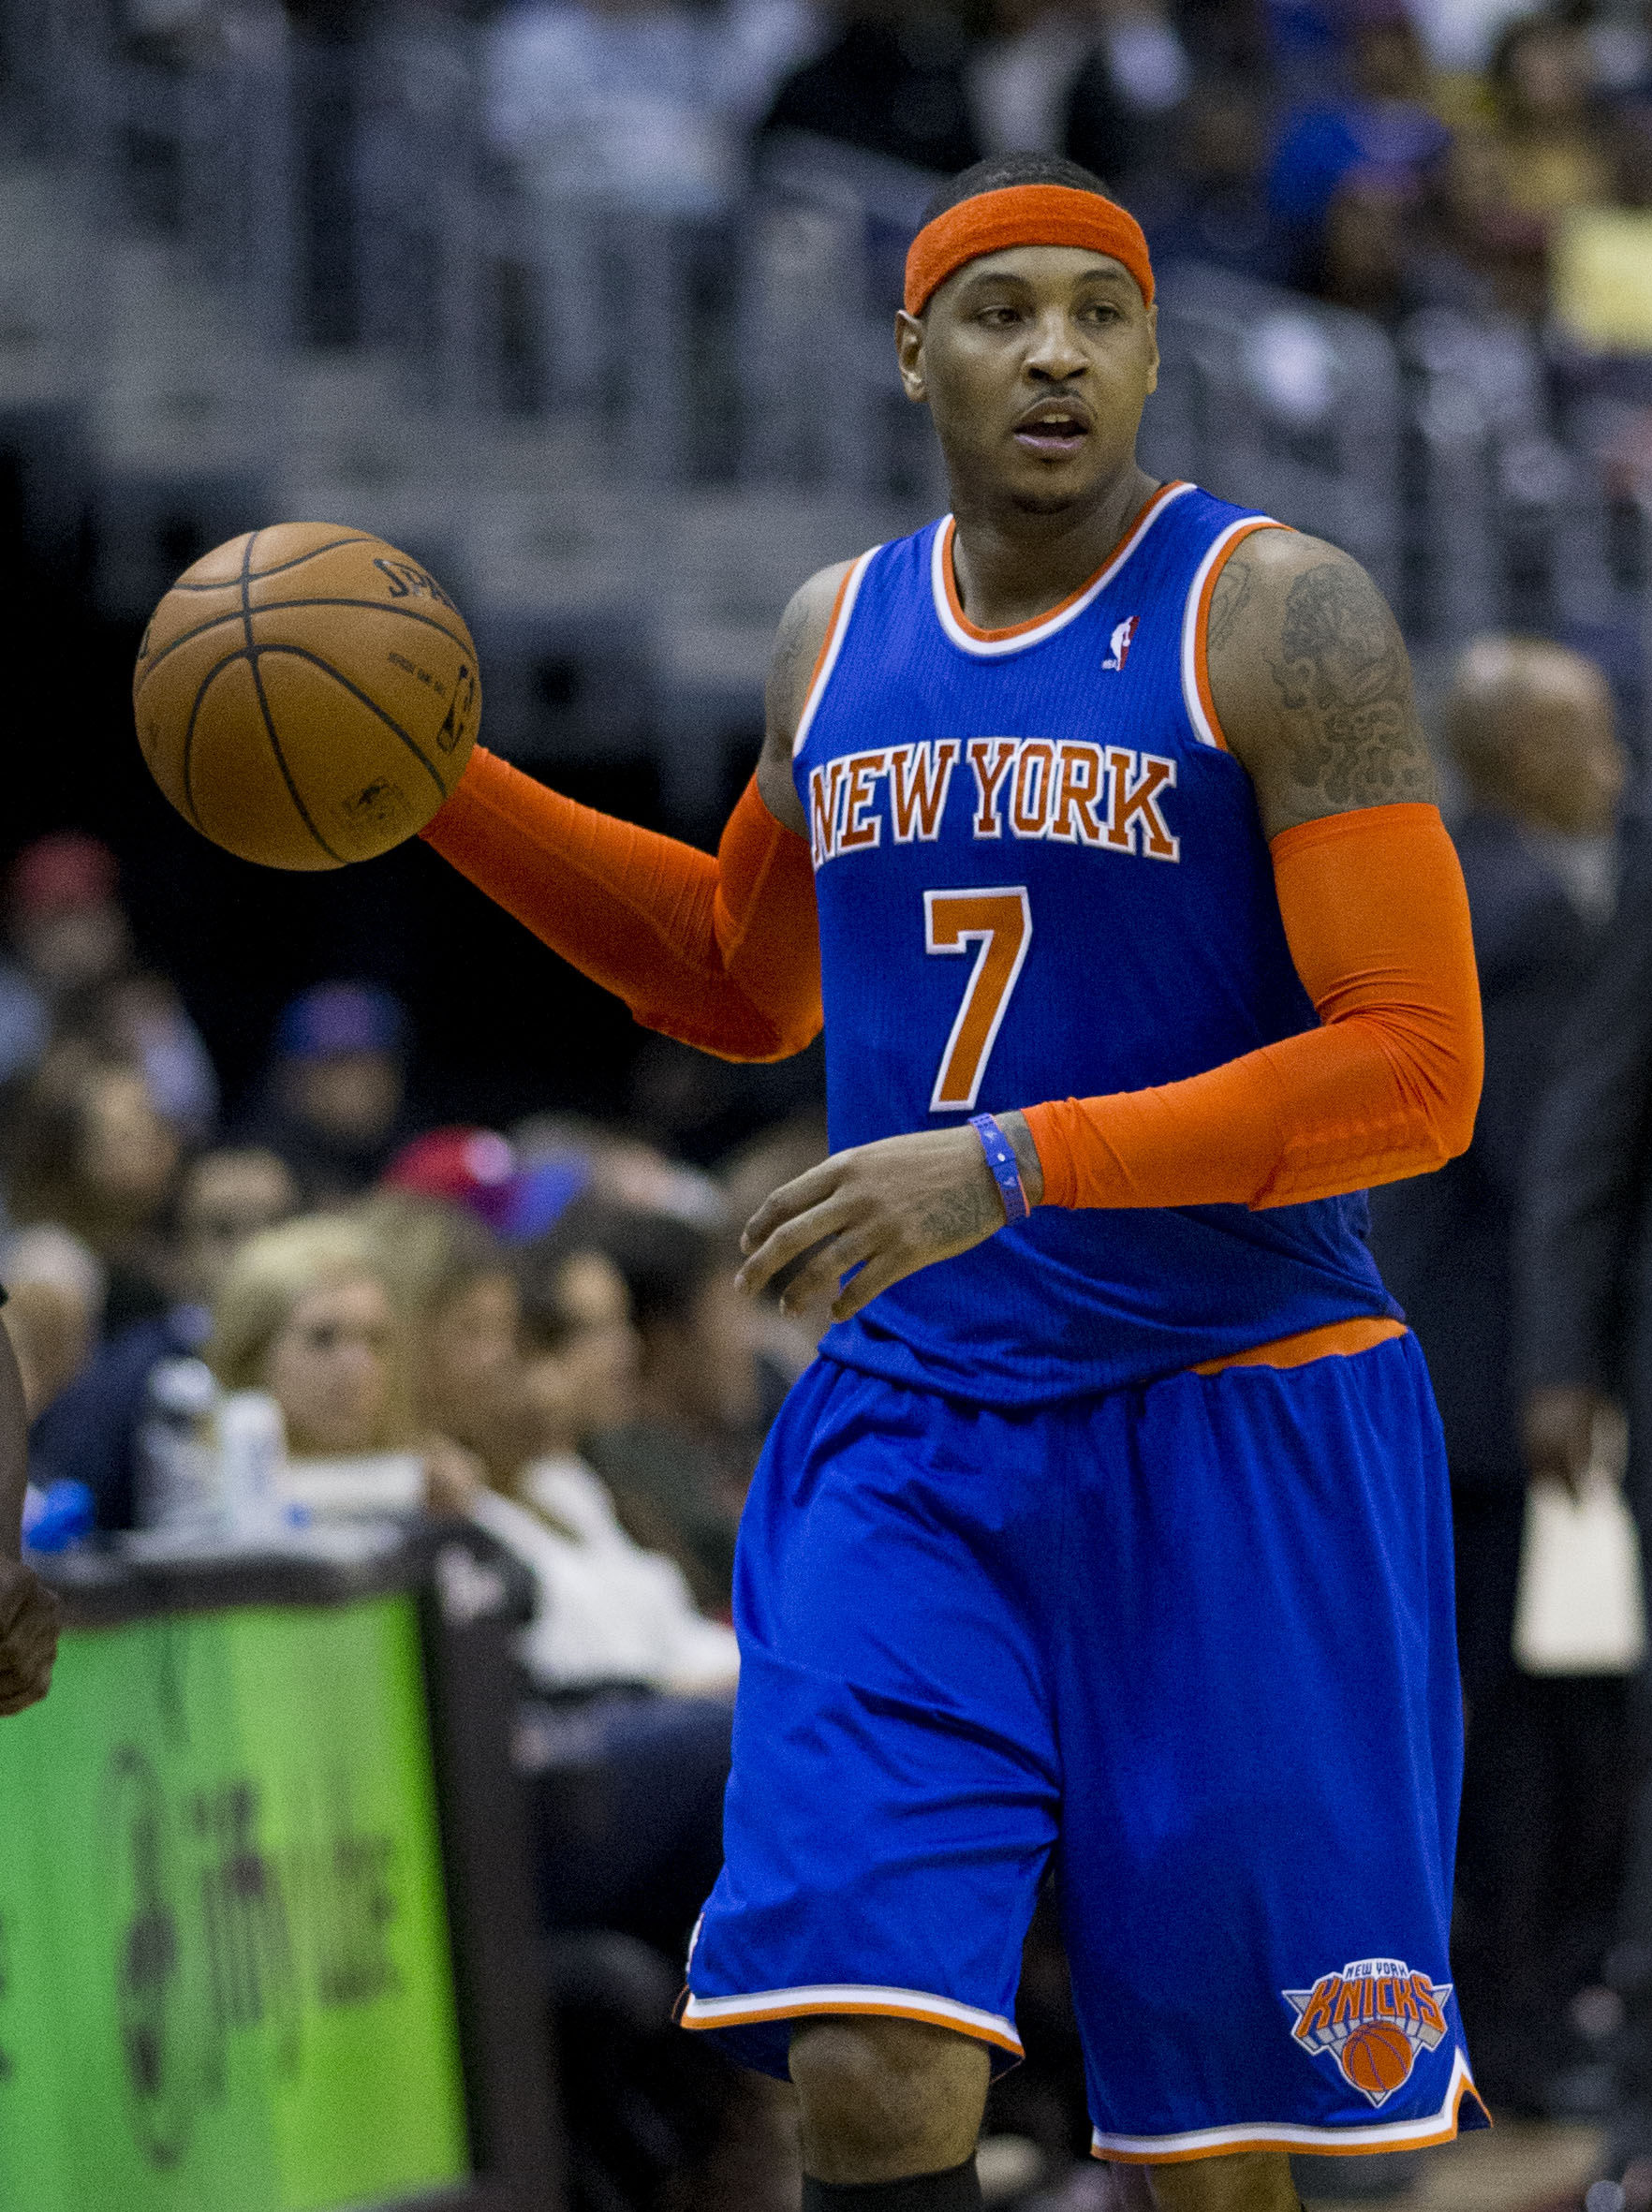 Photo of Carmelo Anthony: American professional basketball player